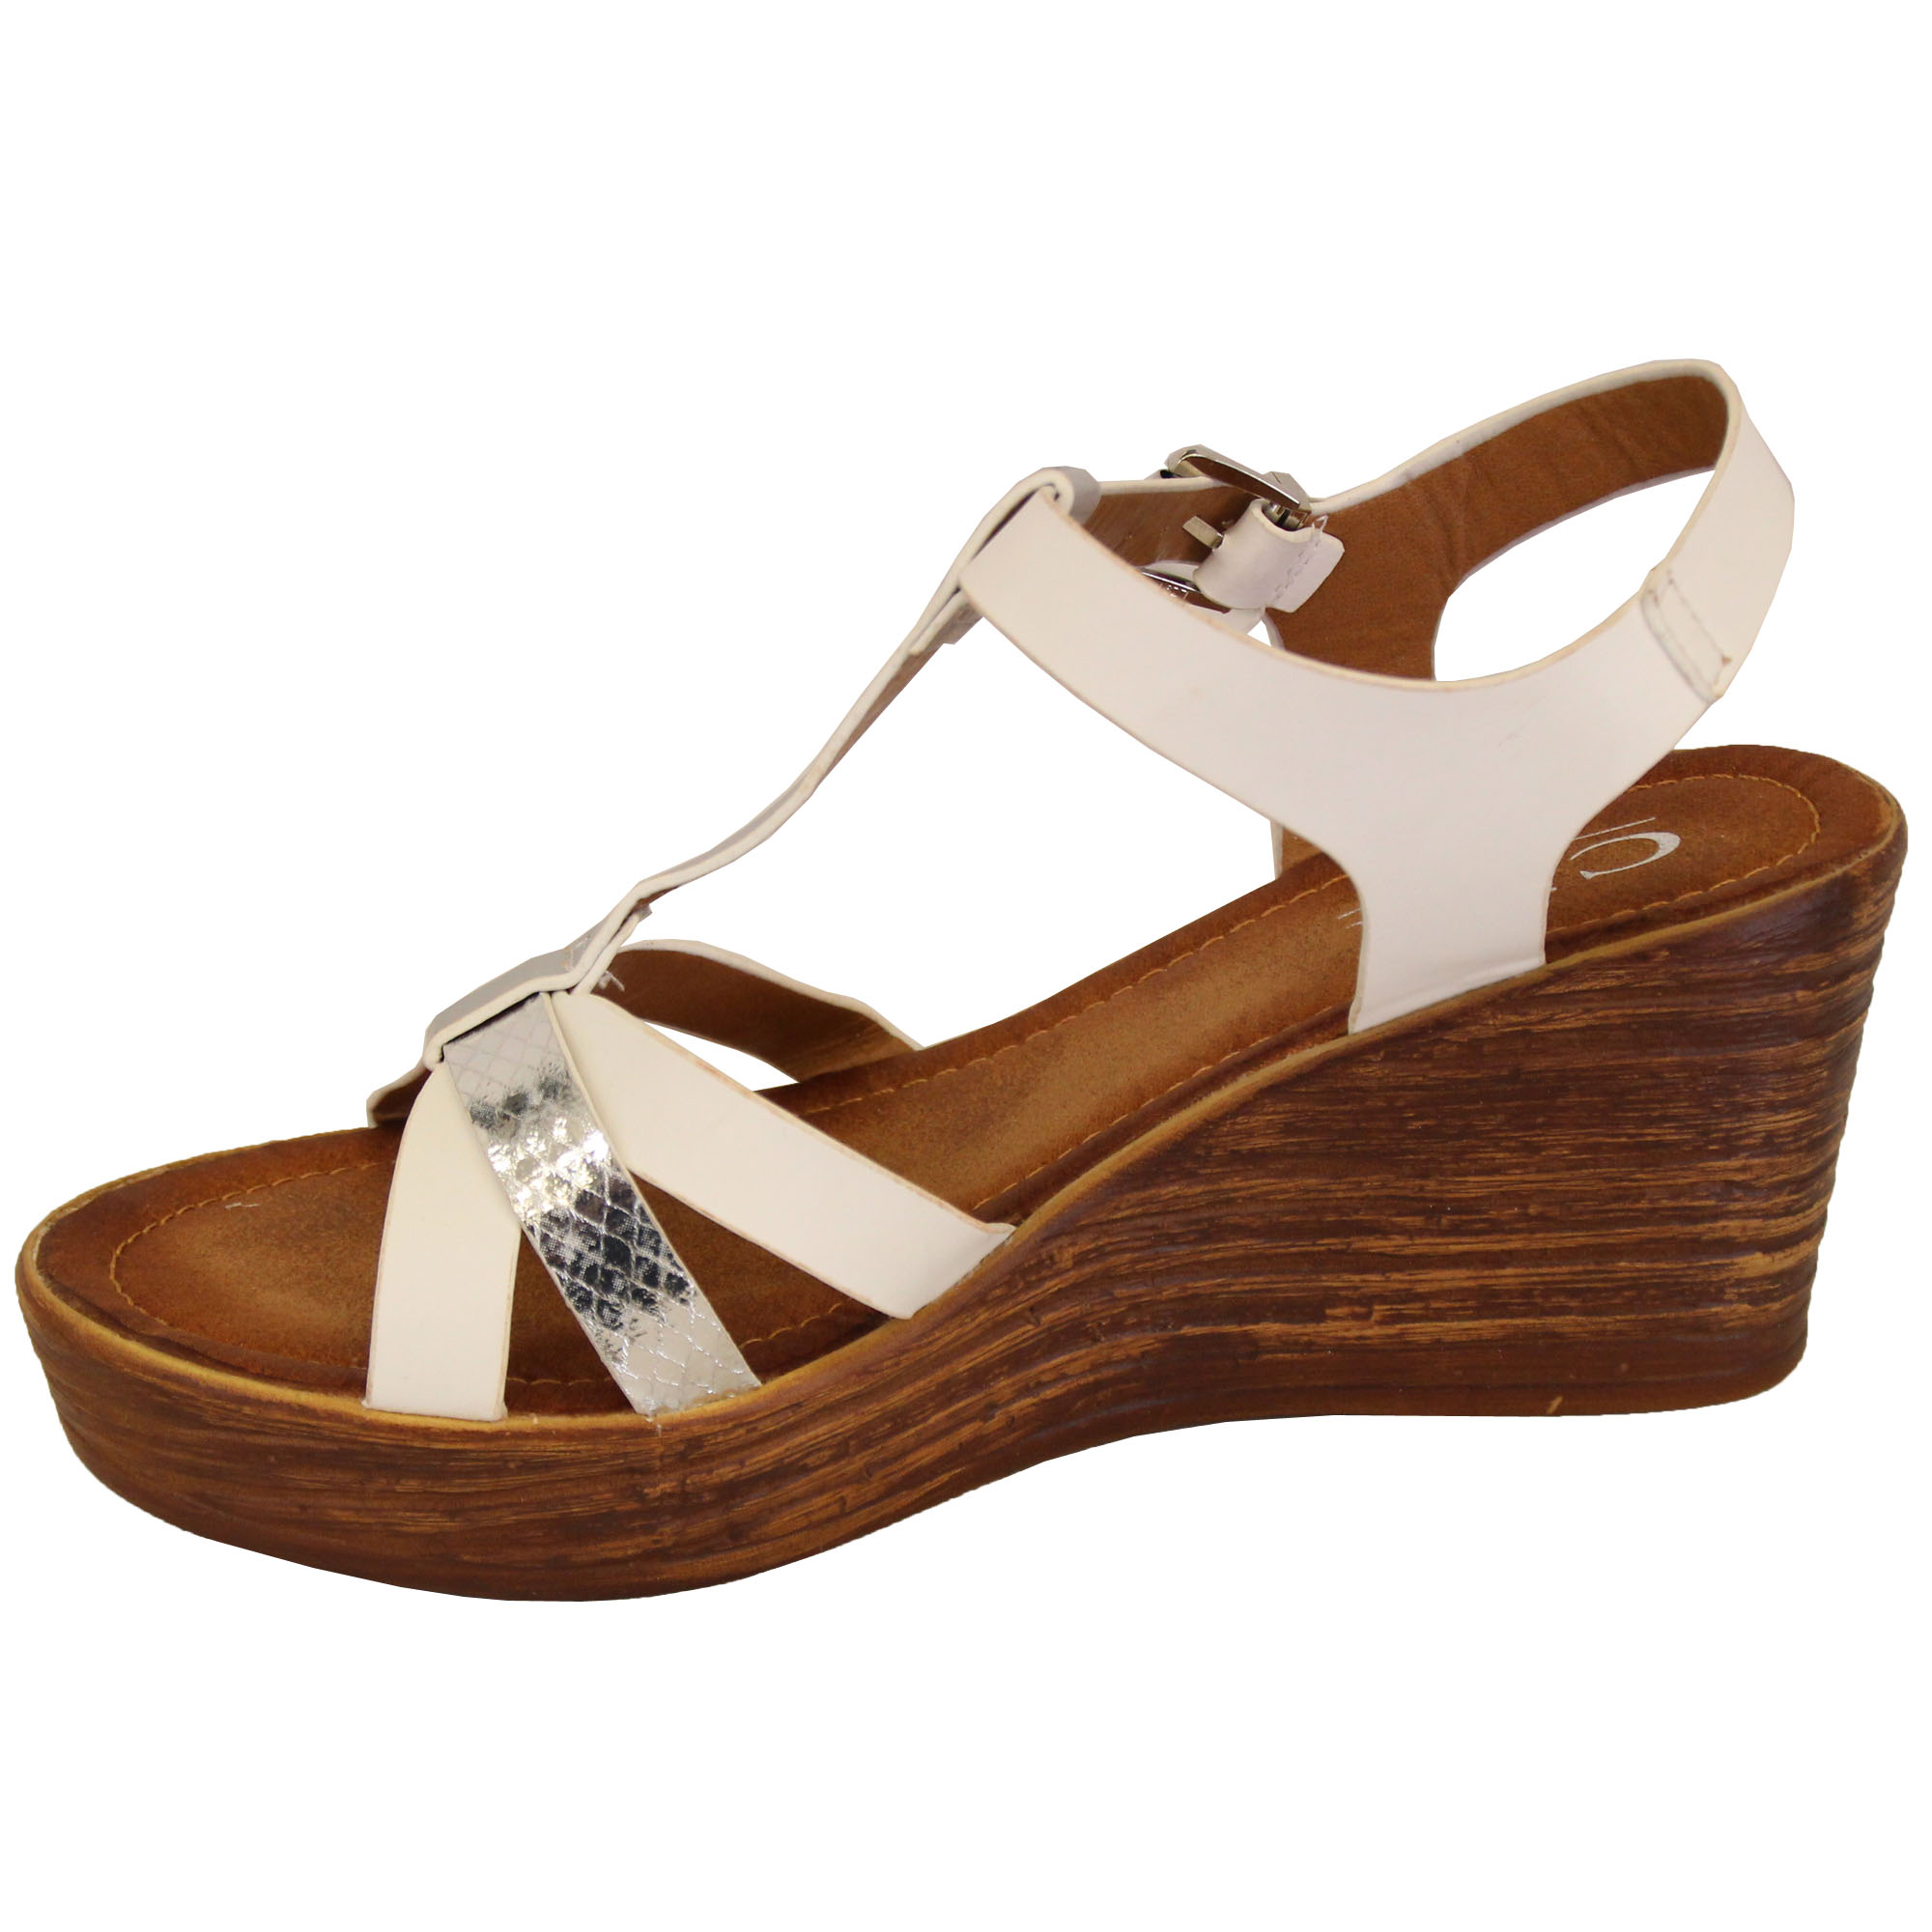 Ladies-Wedge-Sandals-Womens-Strappy-Open-Toe-Shoes-Party-Fashion-Buckle-Summer thumbnail 3